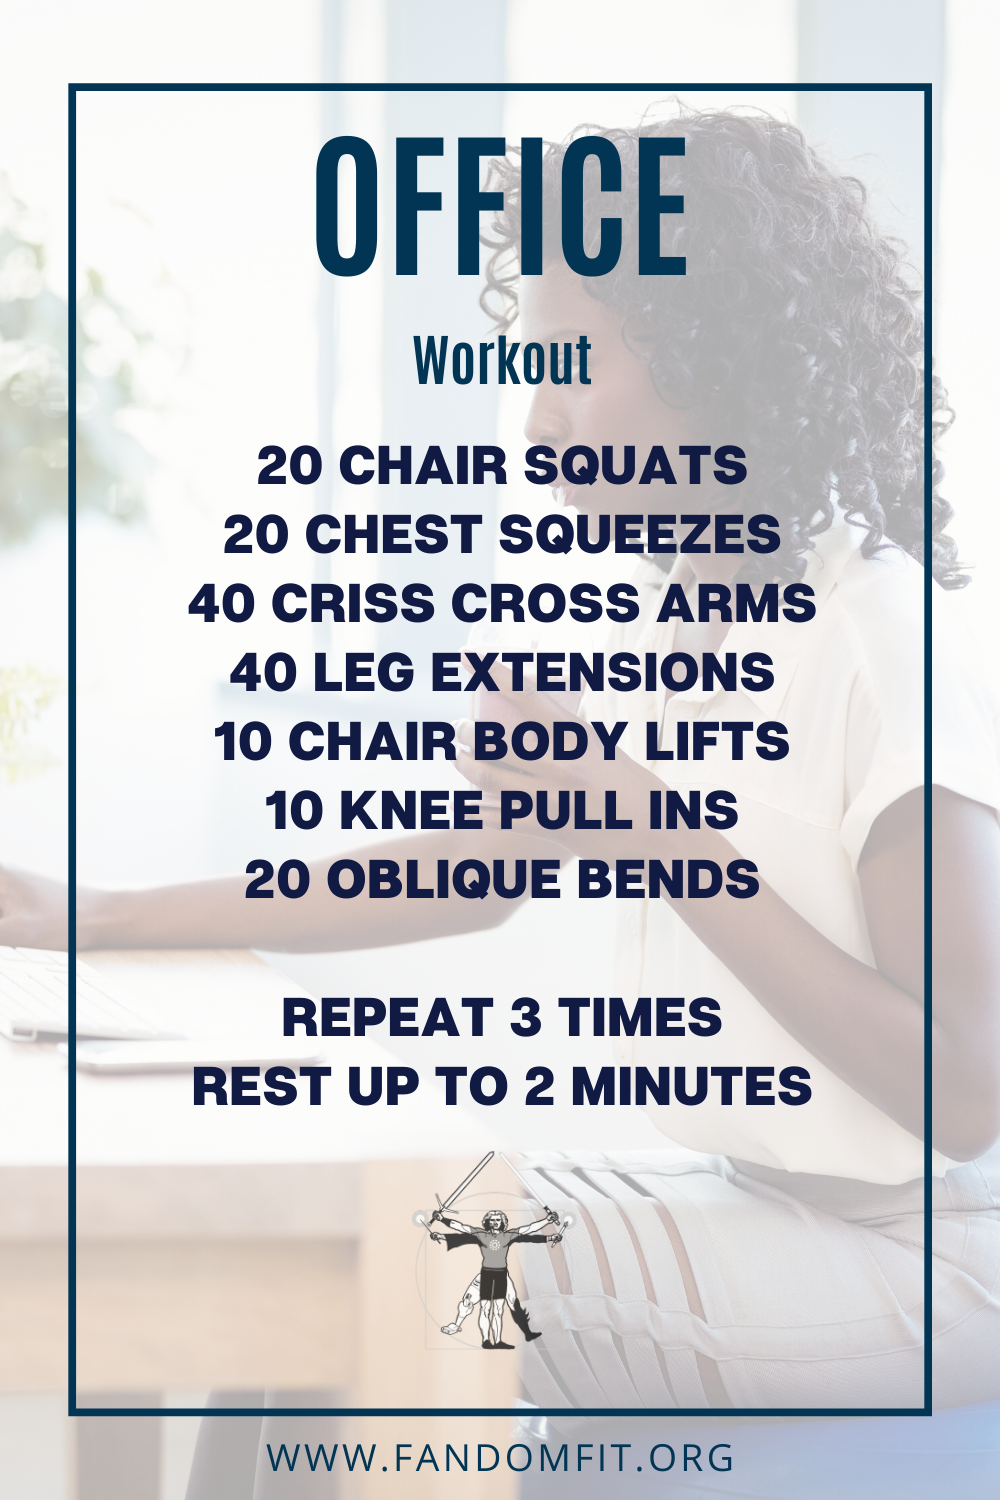 Try out this fitness routine to do in the workplace at the office to get into shape. FandomFit | Fit...